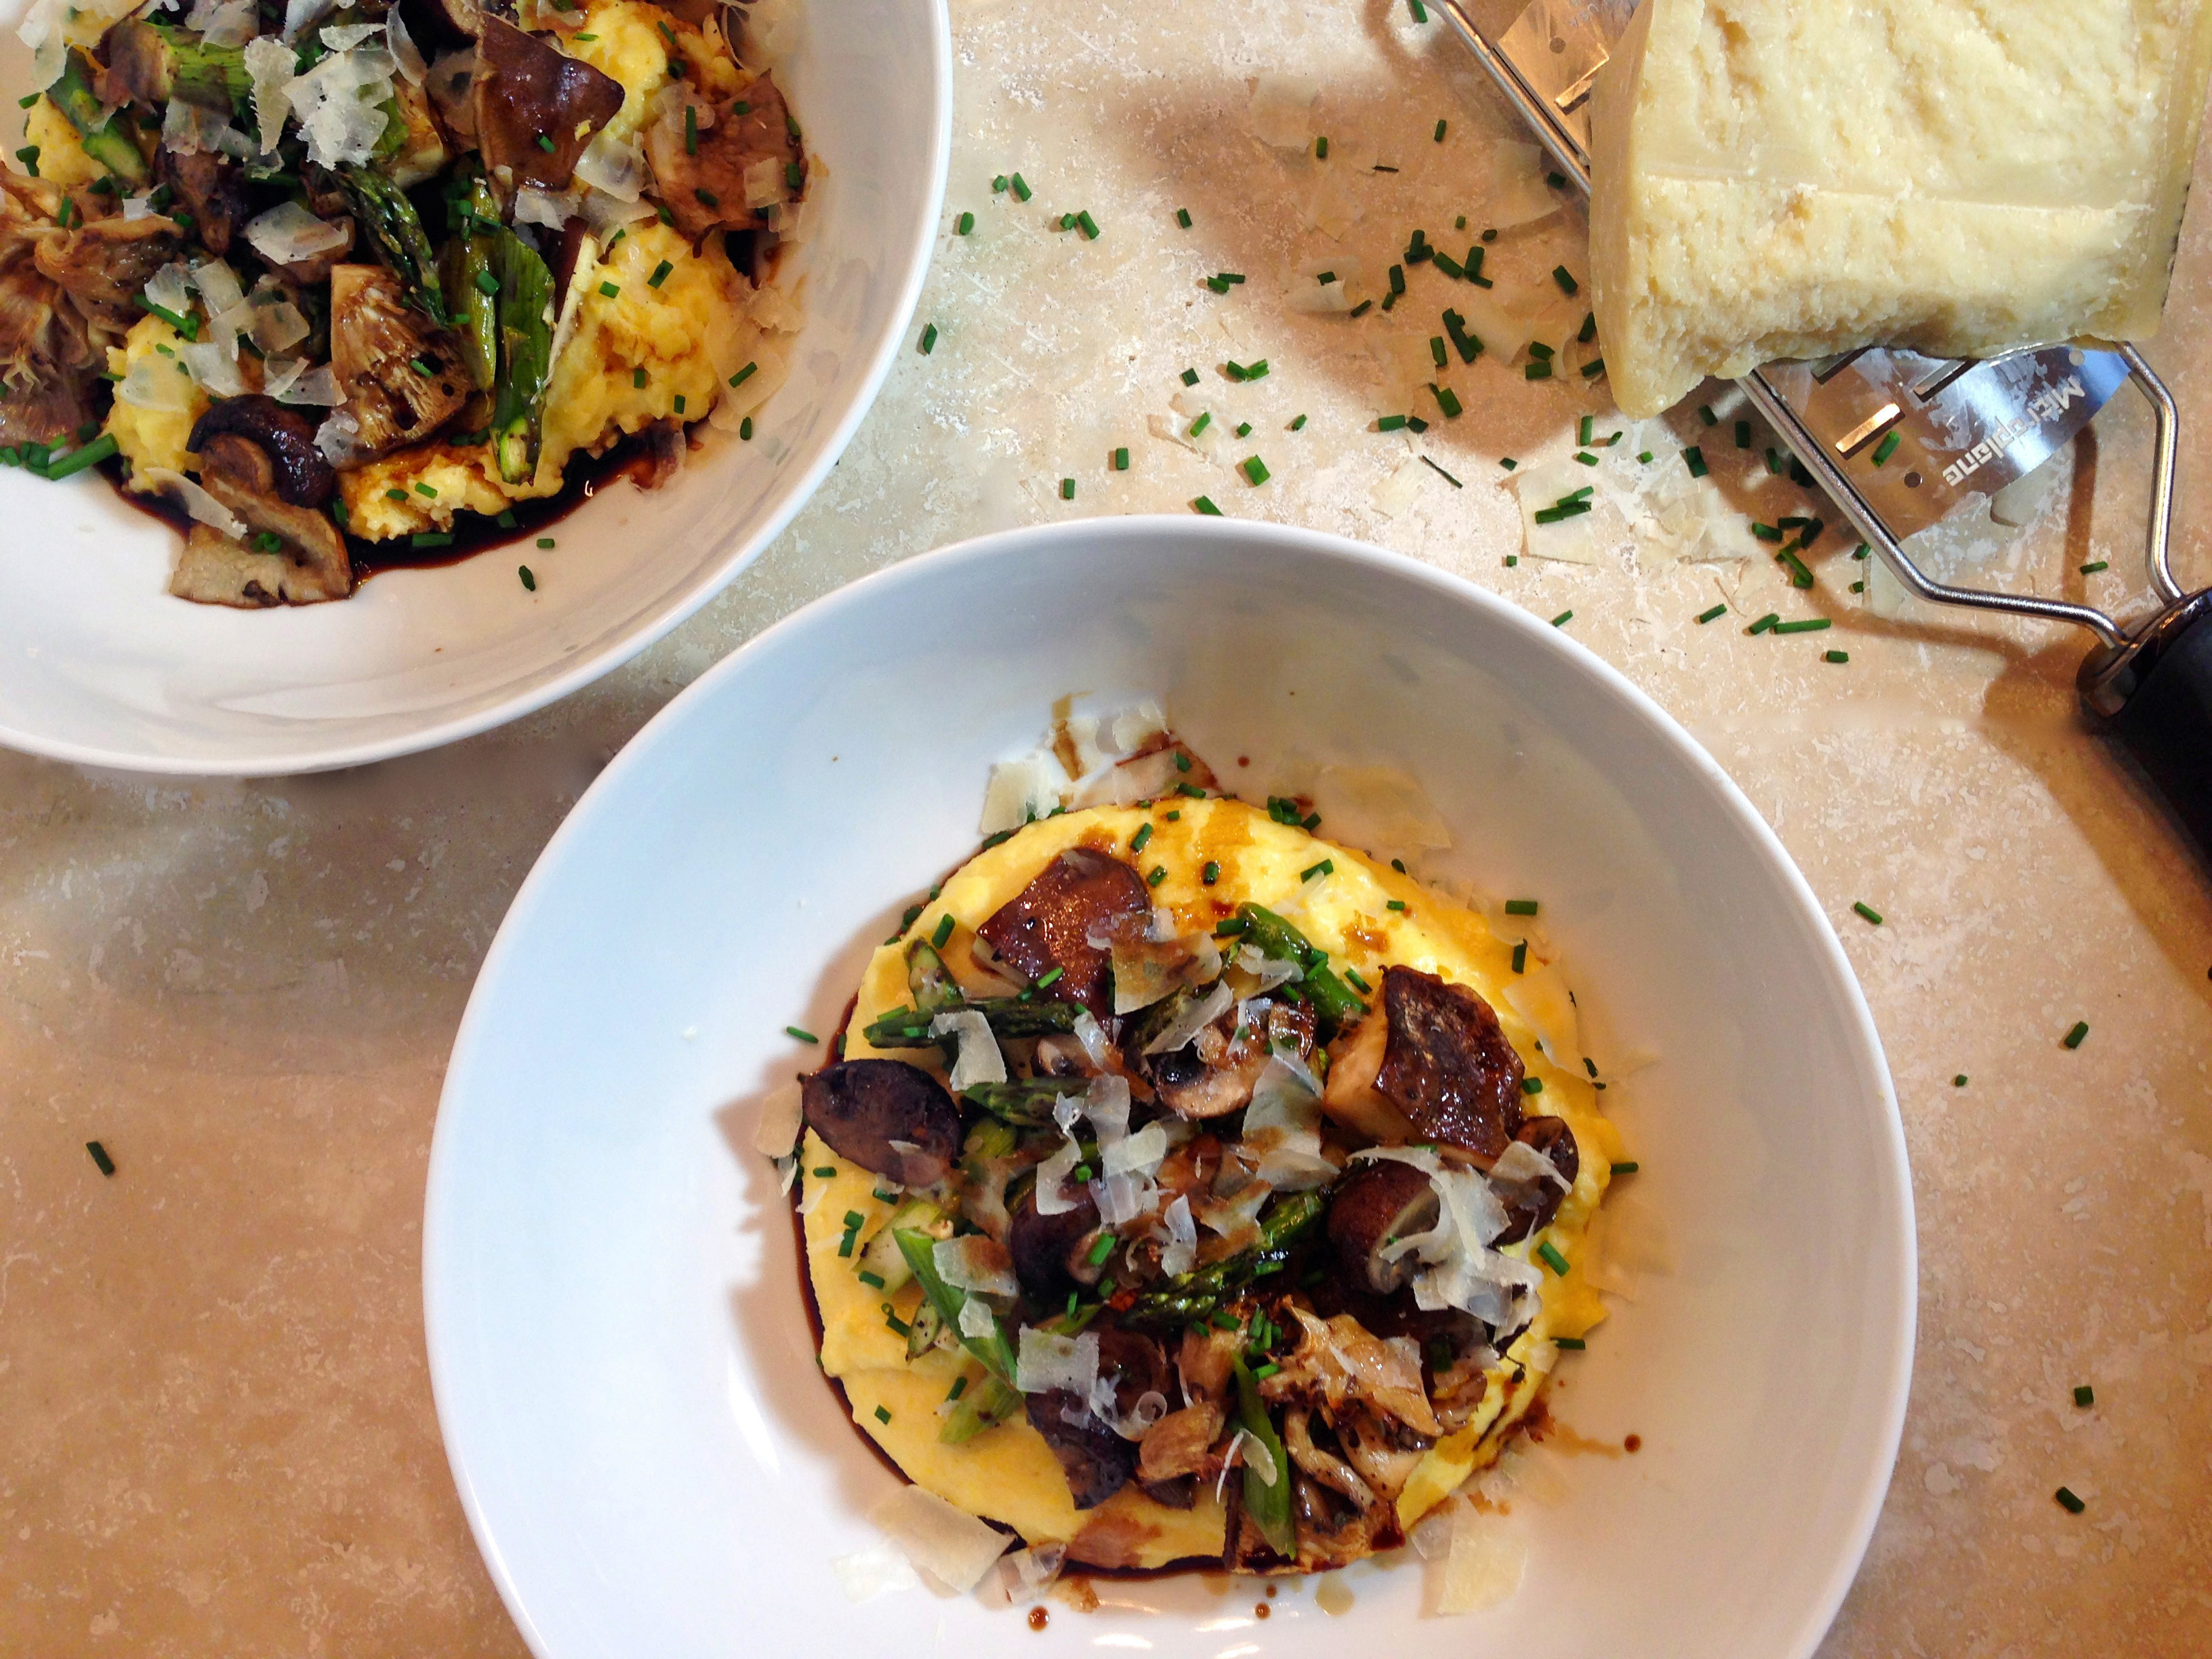 ... mushrooms seared steak and mushrooms on polenta creamy polenta creamy